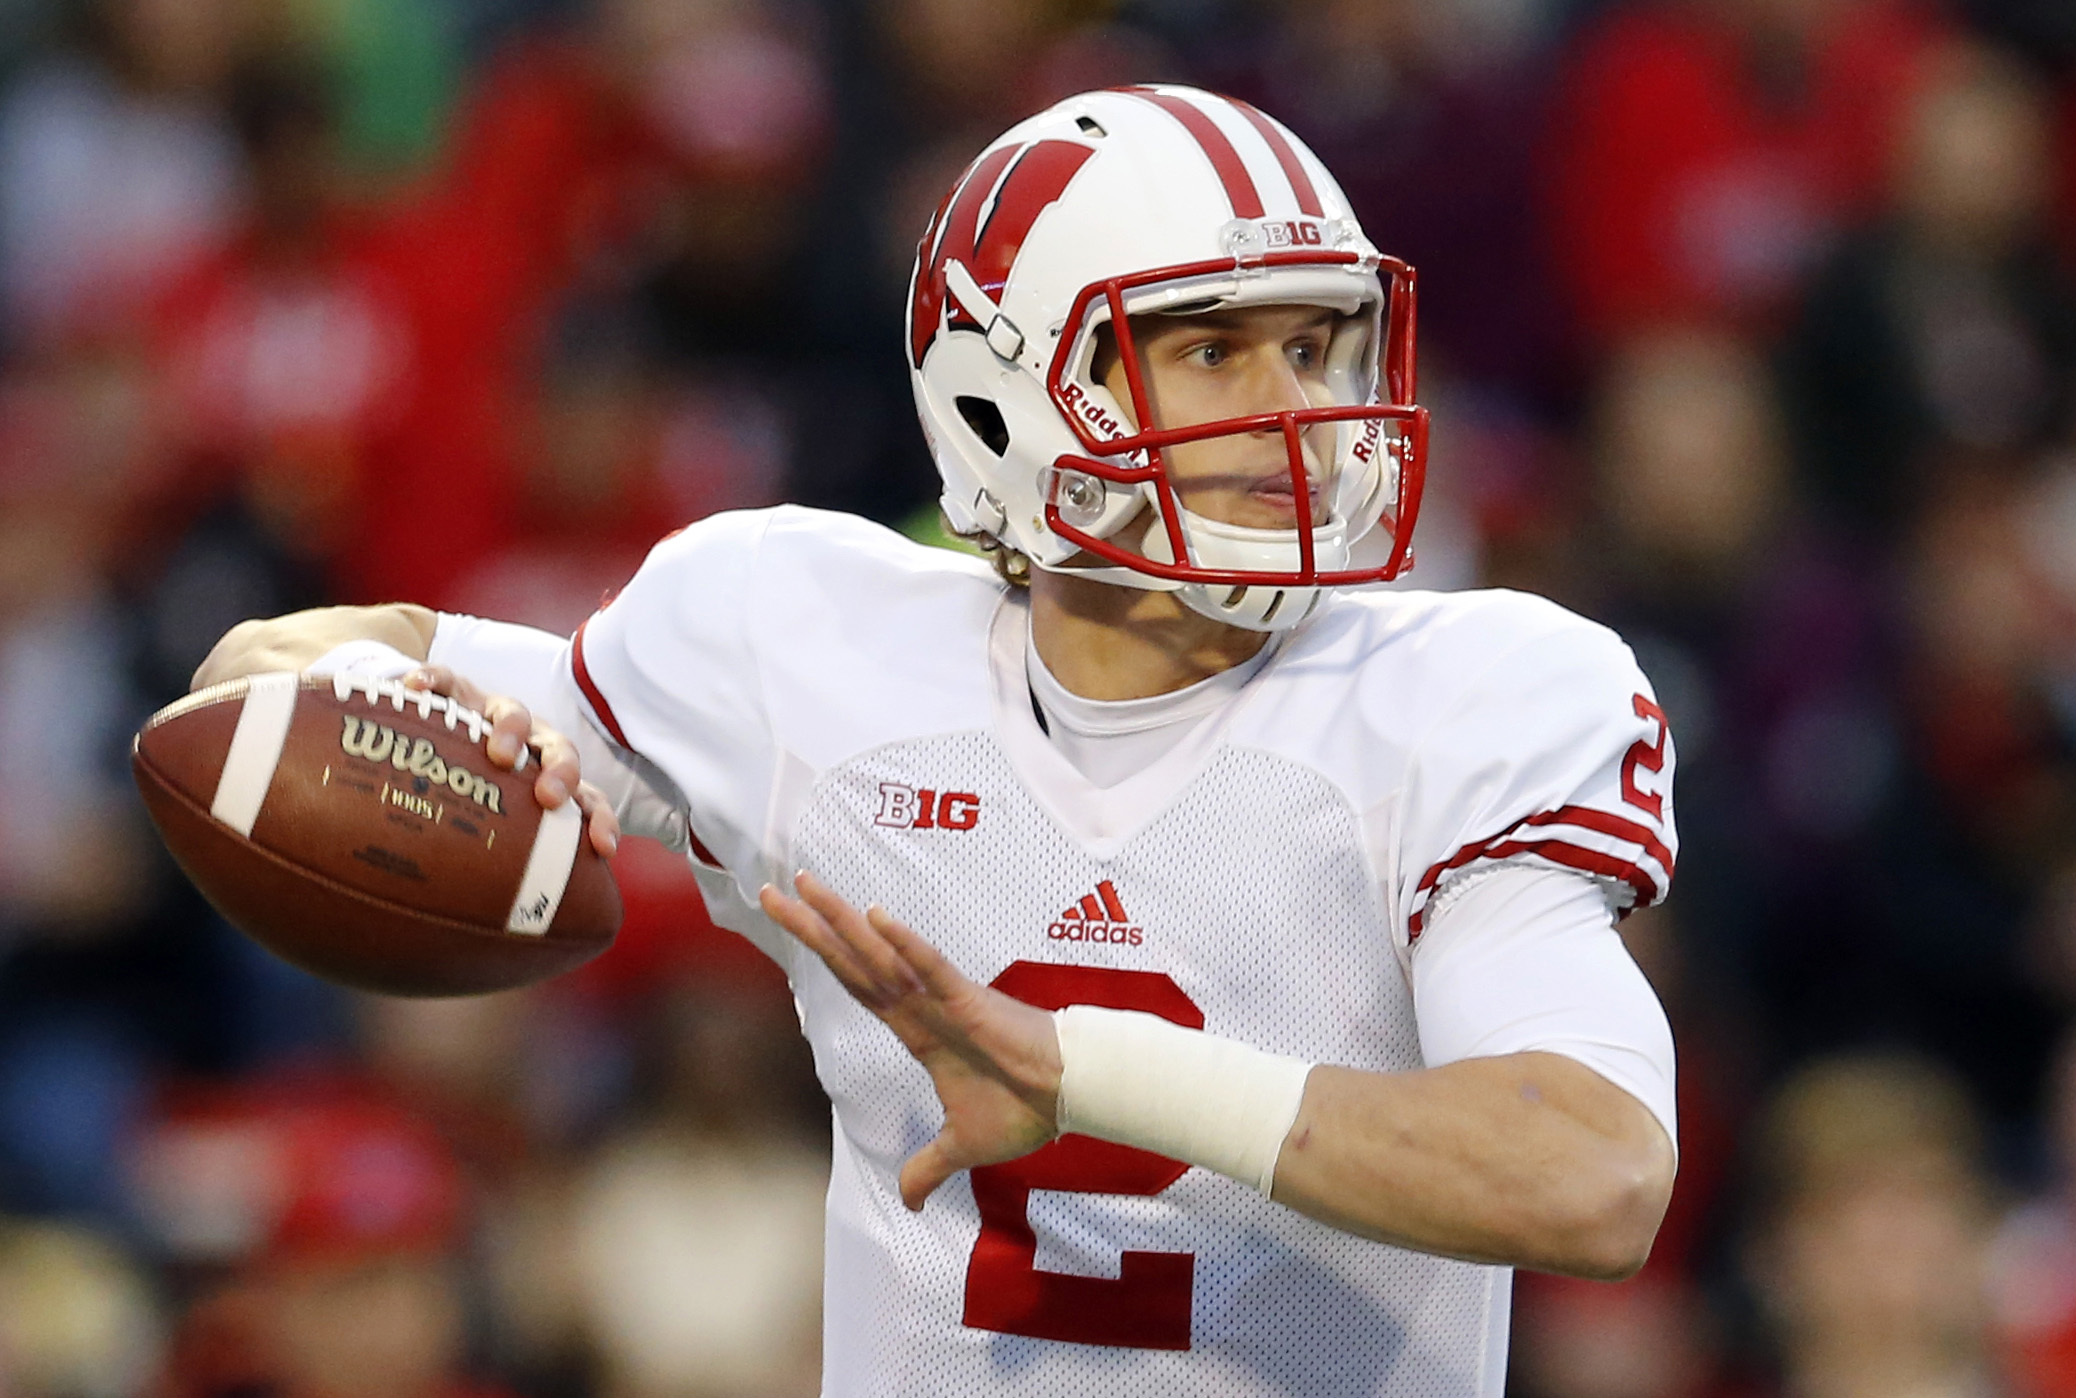 FILE - In this Saturday, Nov. 7, 2015 file photo, Wisconsin quarterback Joel Stave throws to a receiver during an NCAA college football game against Maryland in College Park, Md. For all the ups and downs in his career, Stave can wind down his time at No.